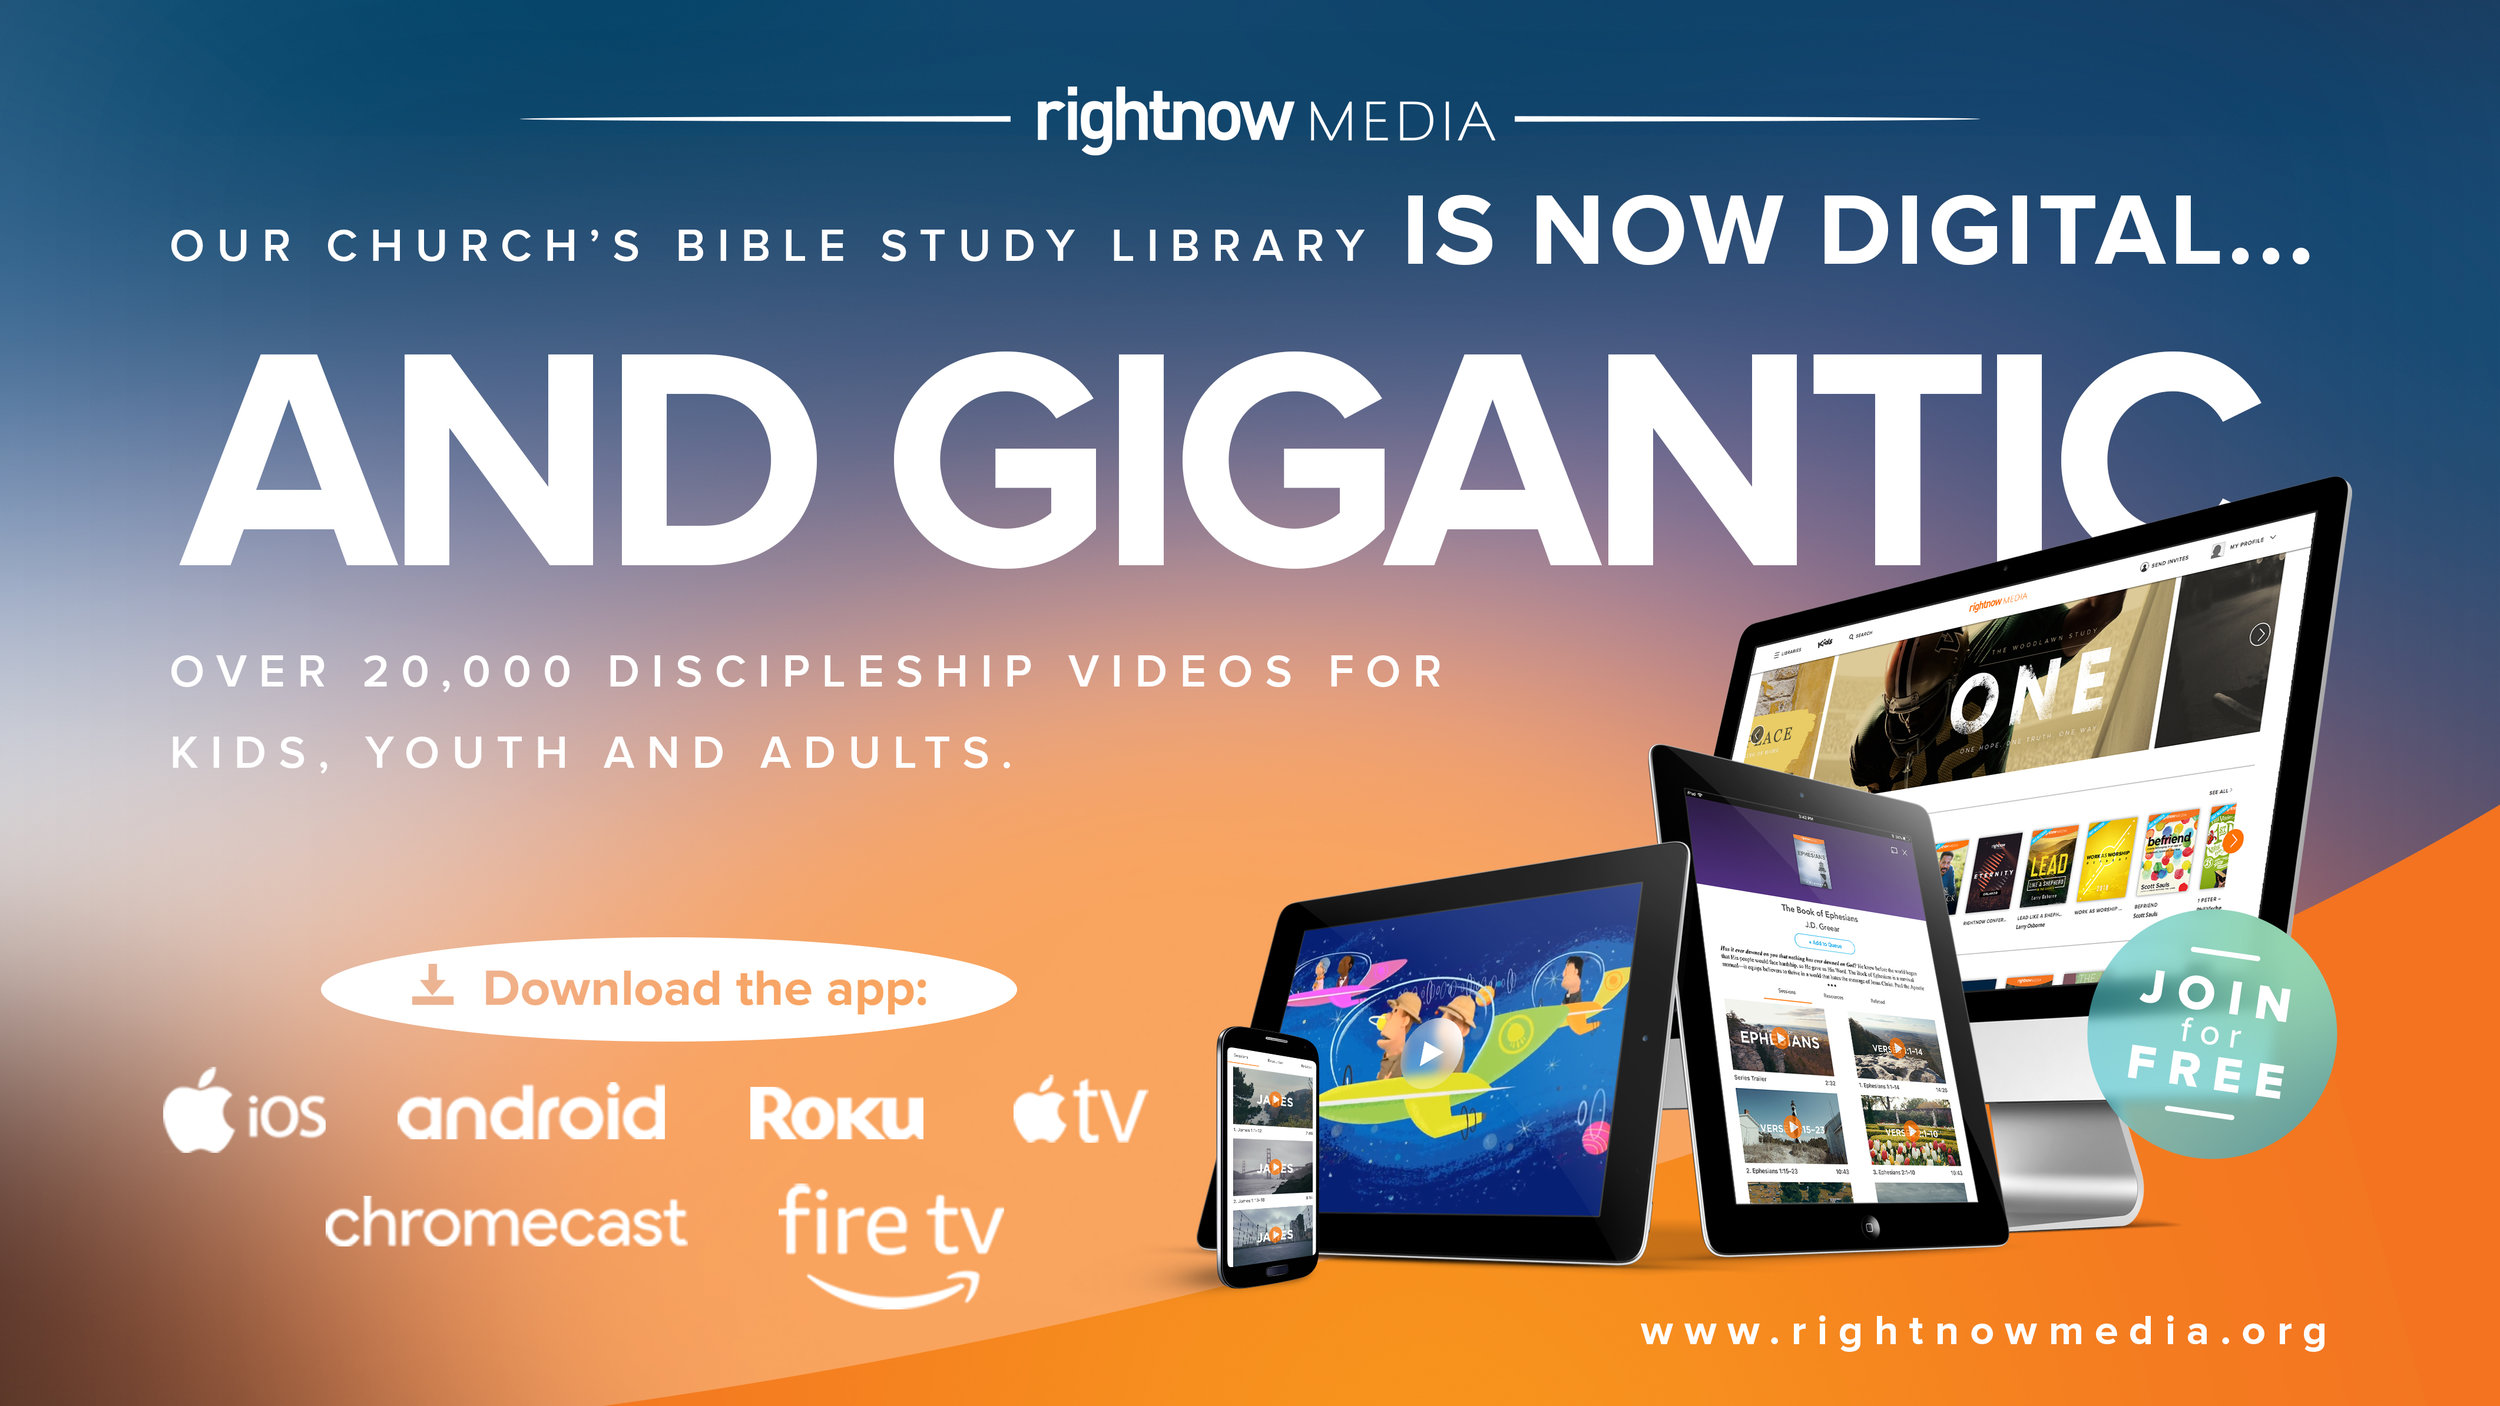 Contact Pastor Tom or Allan to gain access to our RightNow digital Bible study library. Click image to contact.